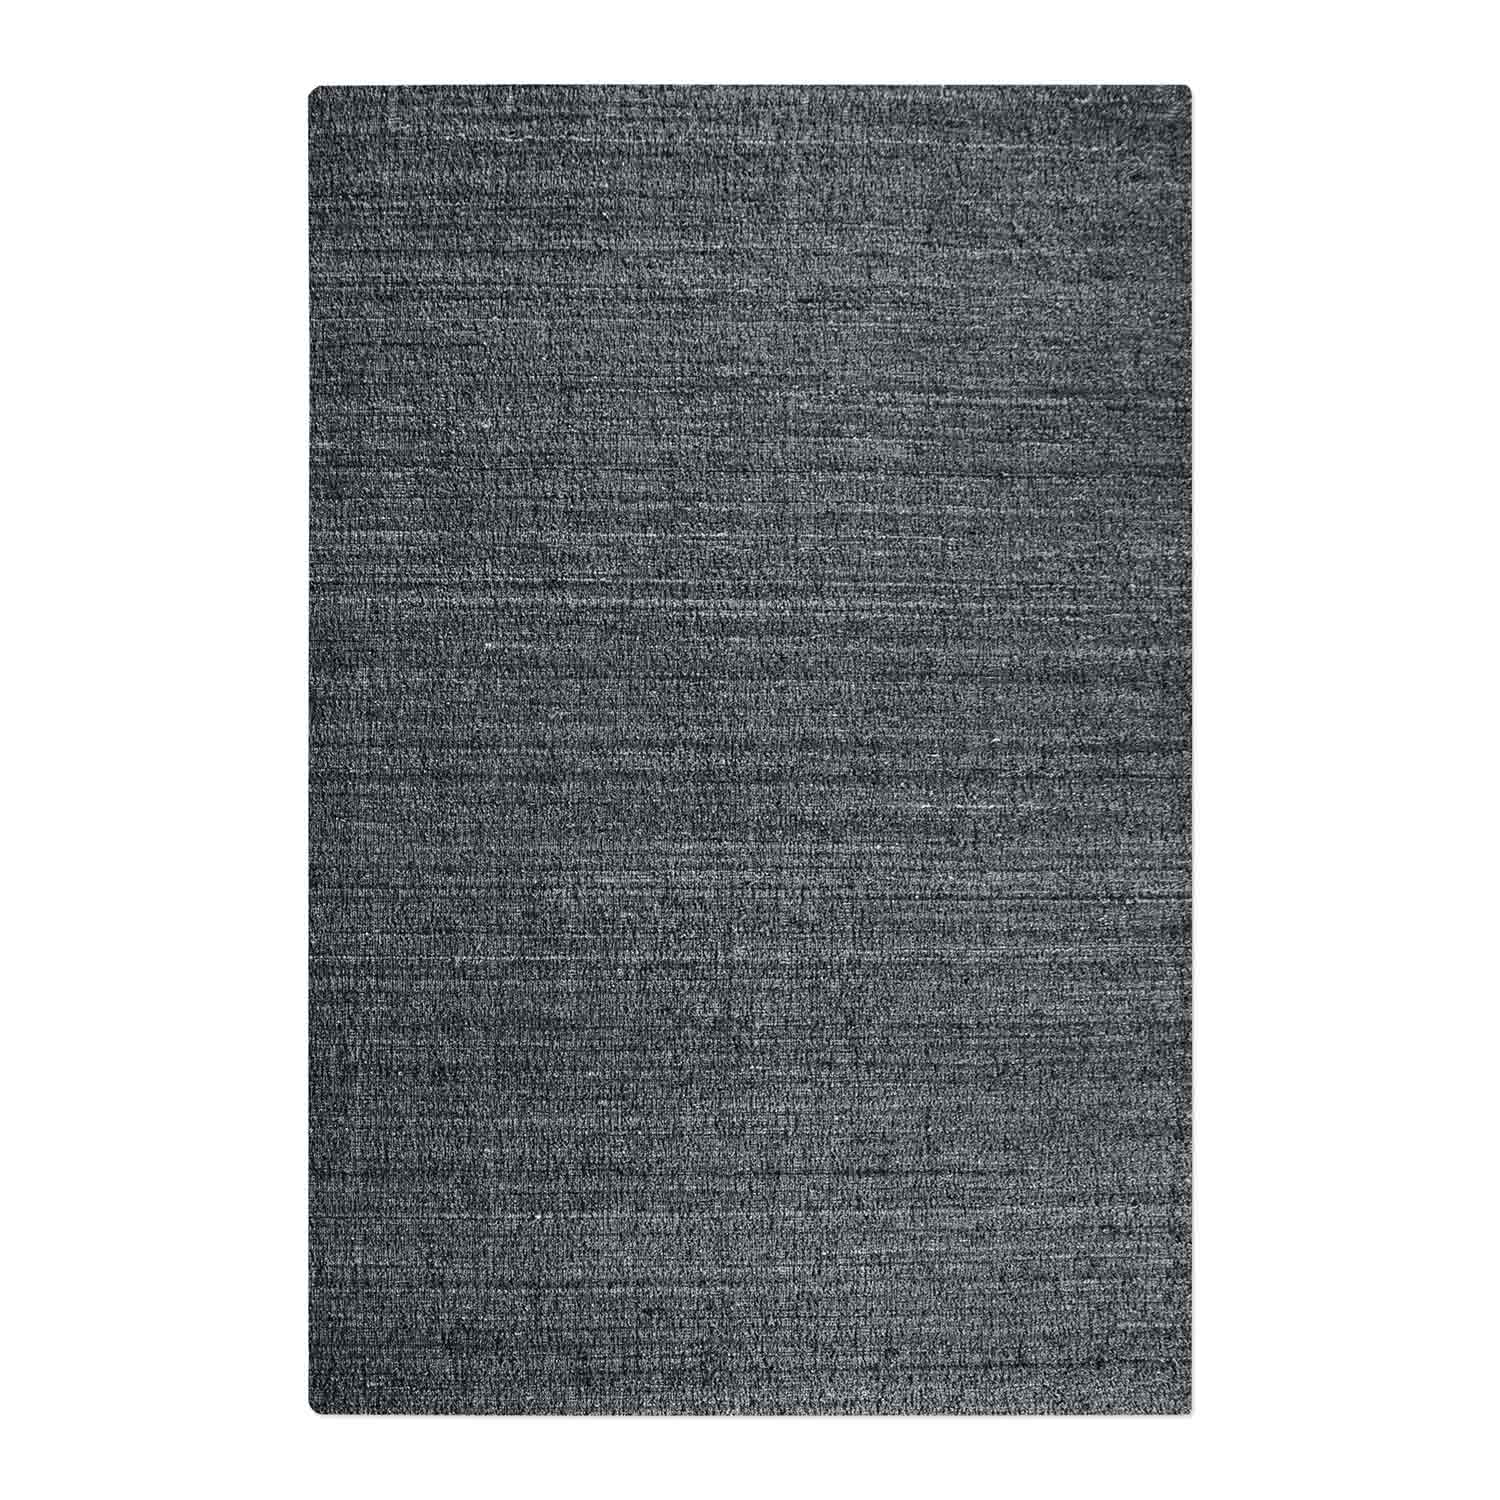 Uttermost Catrin 9 x 12 Rug - Charcoal